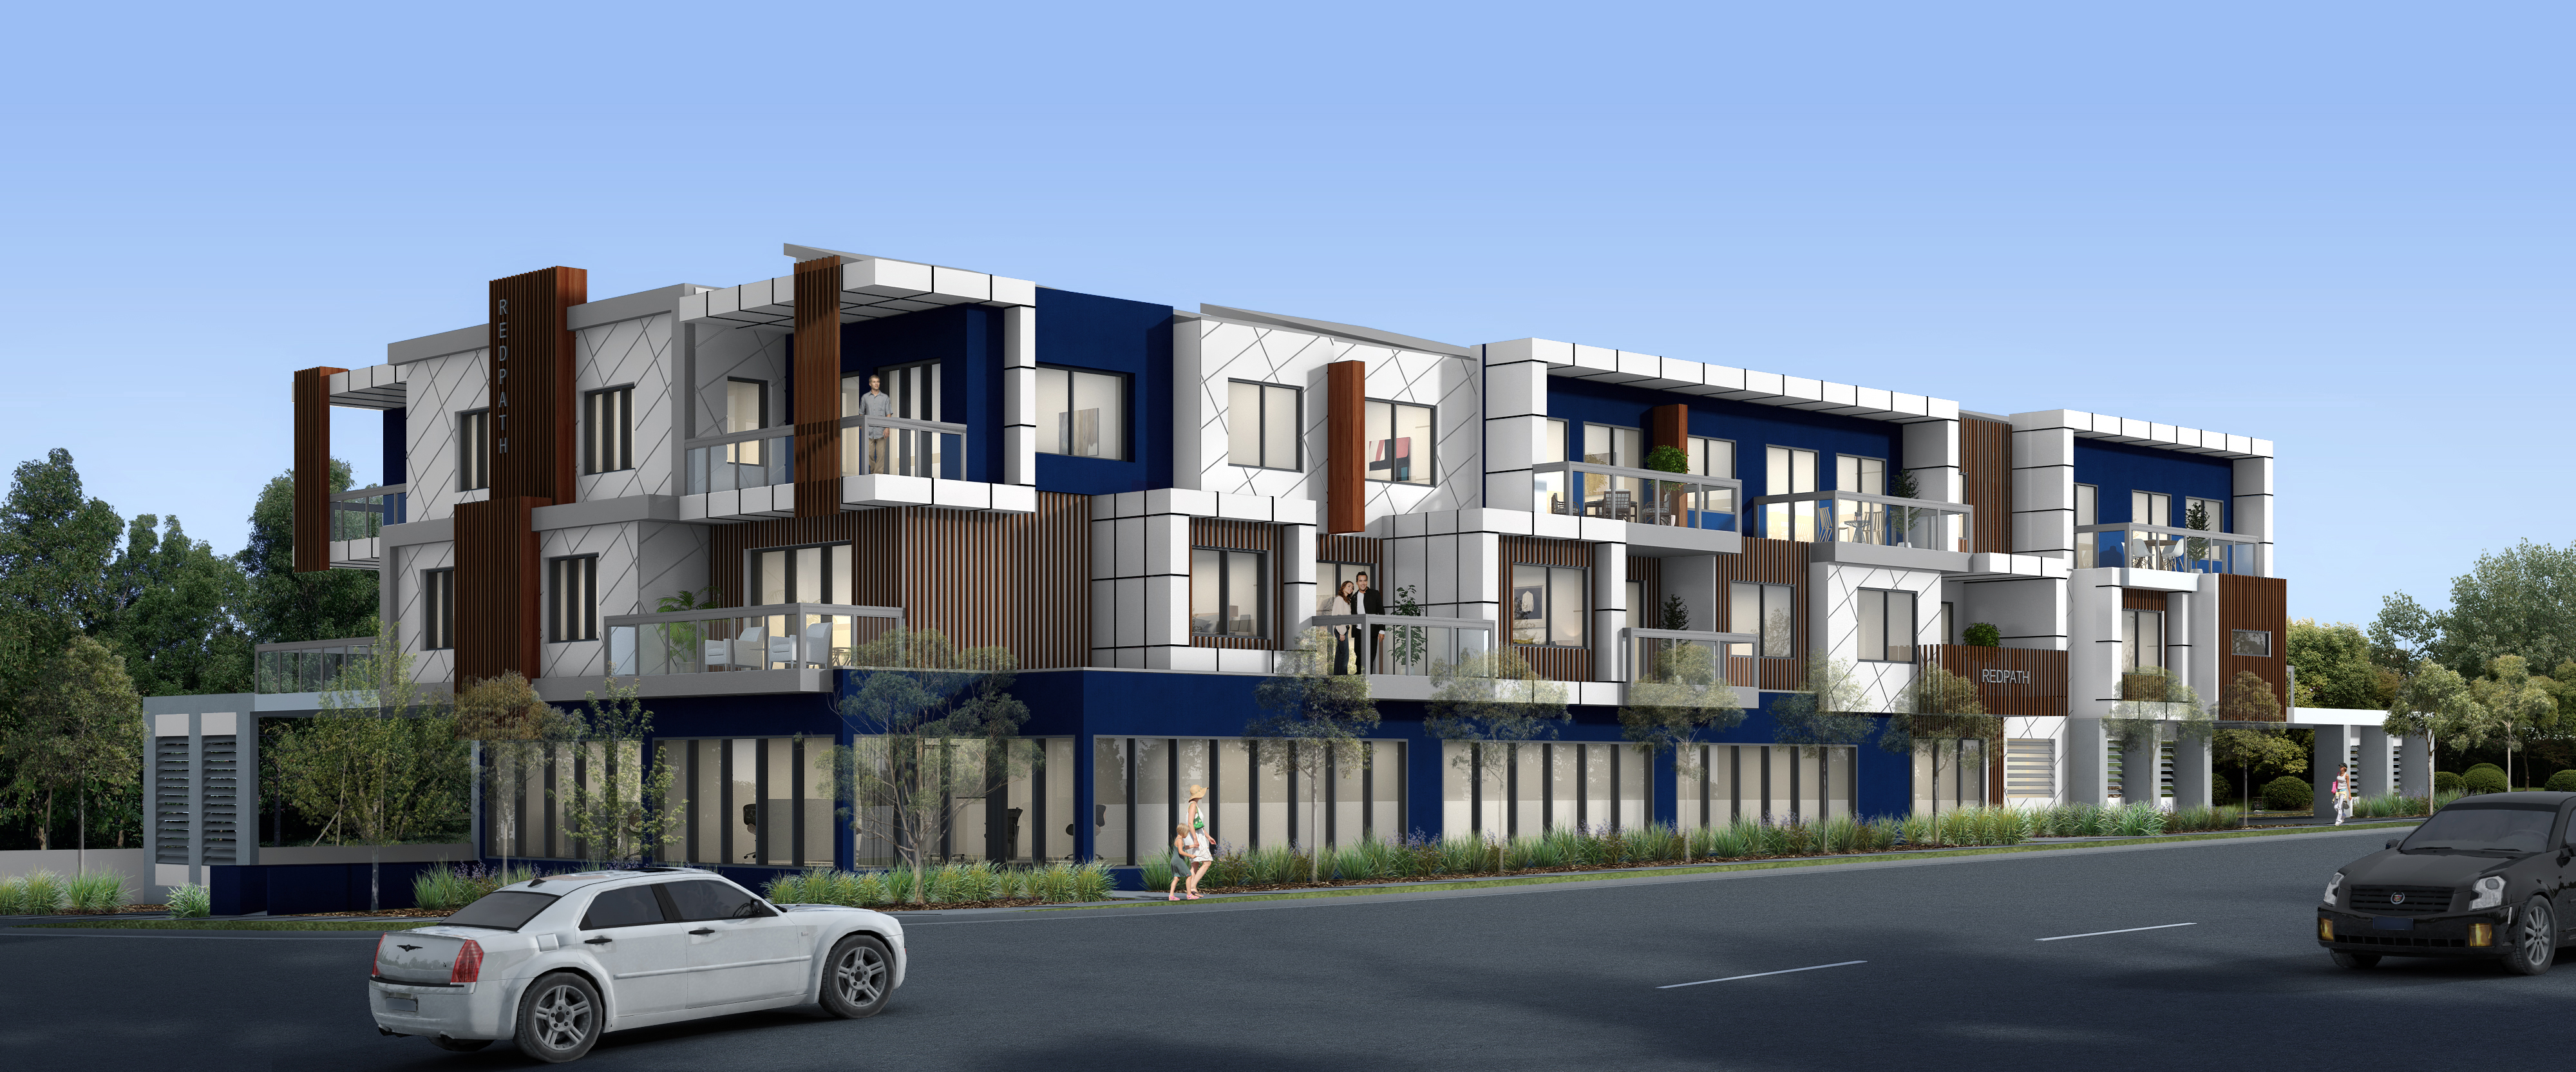 Blueprint architectural design consultants welcome to blueprint malvernweather Images